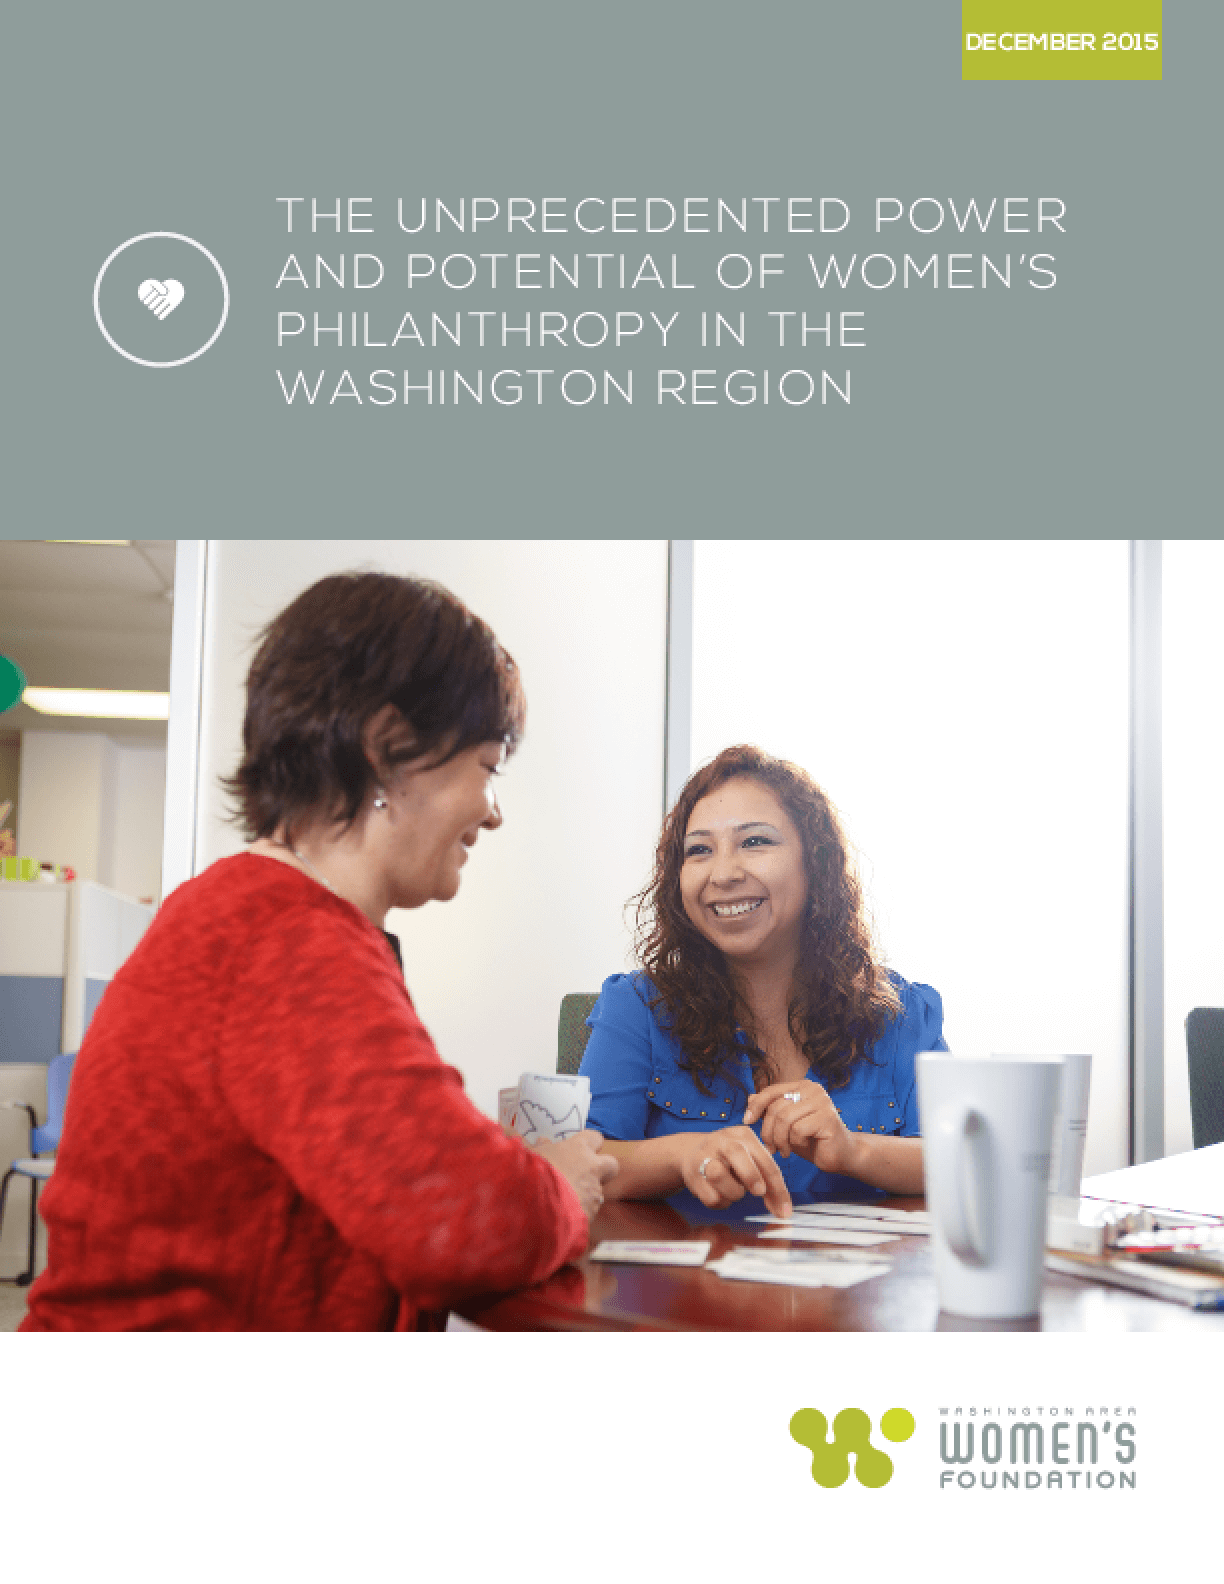 The Unprecedented Power and Potential of Women's Philanthropy in the Washington Region